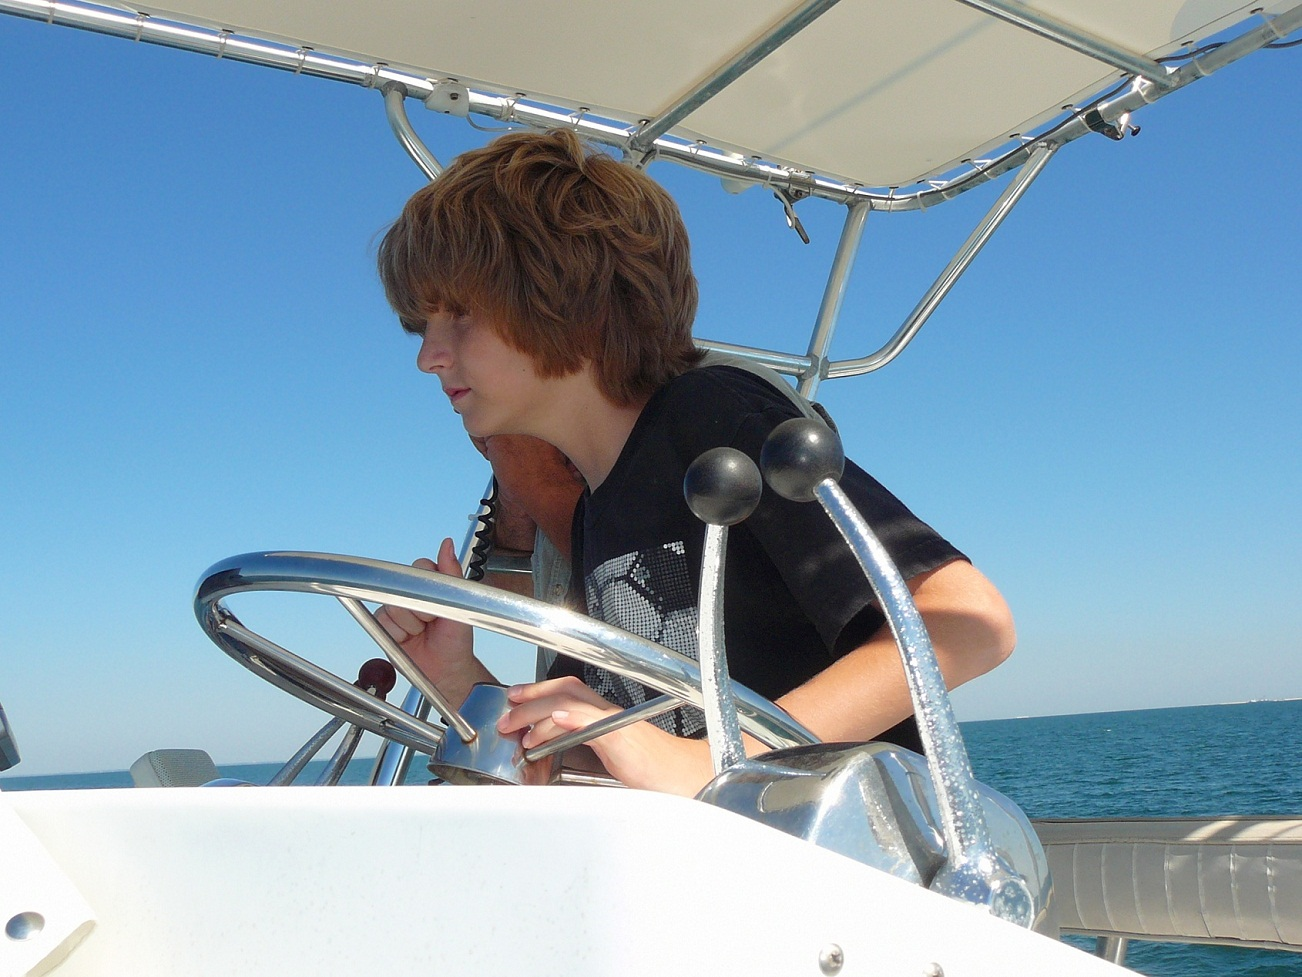 Click image for larger version  Name:Vacation 2010 3 081.JPG Views:49 Size:350.7 KB ID:114059